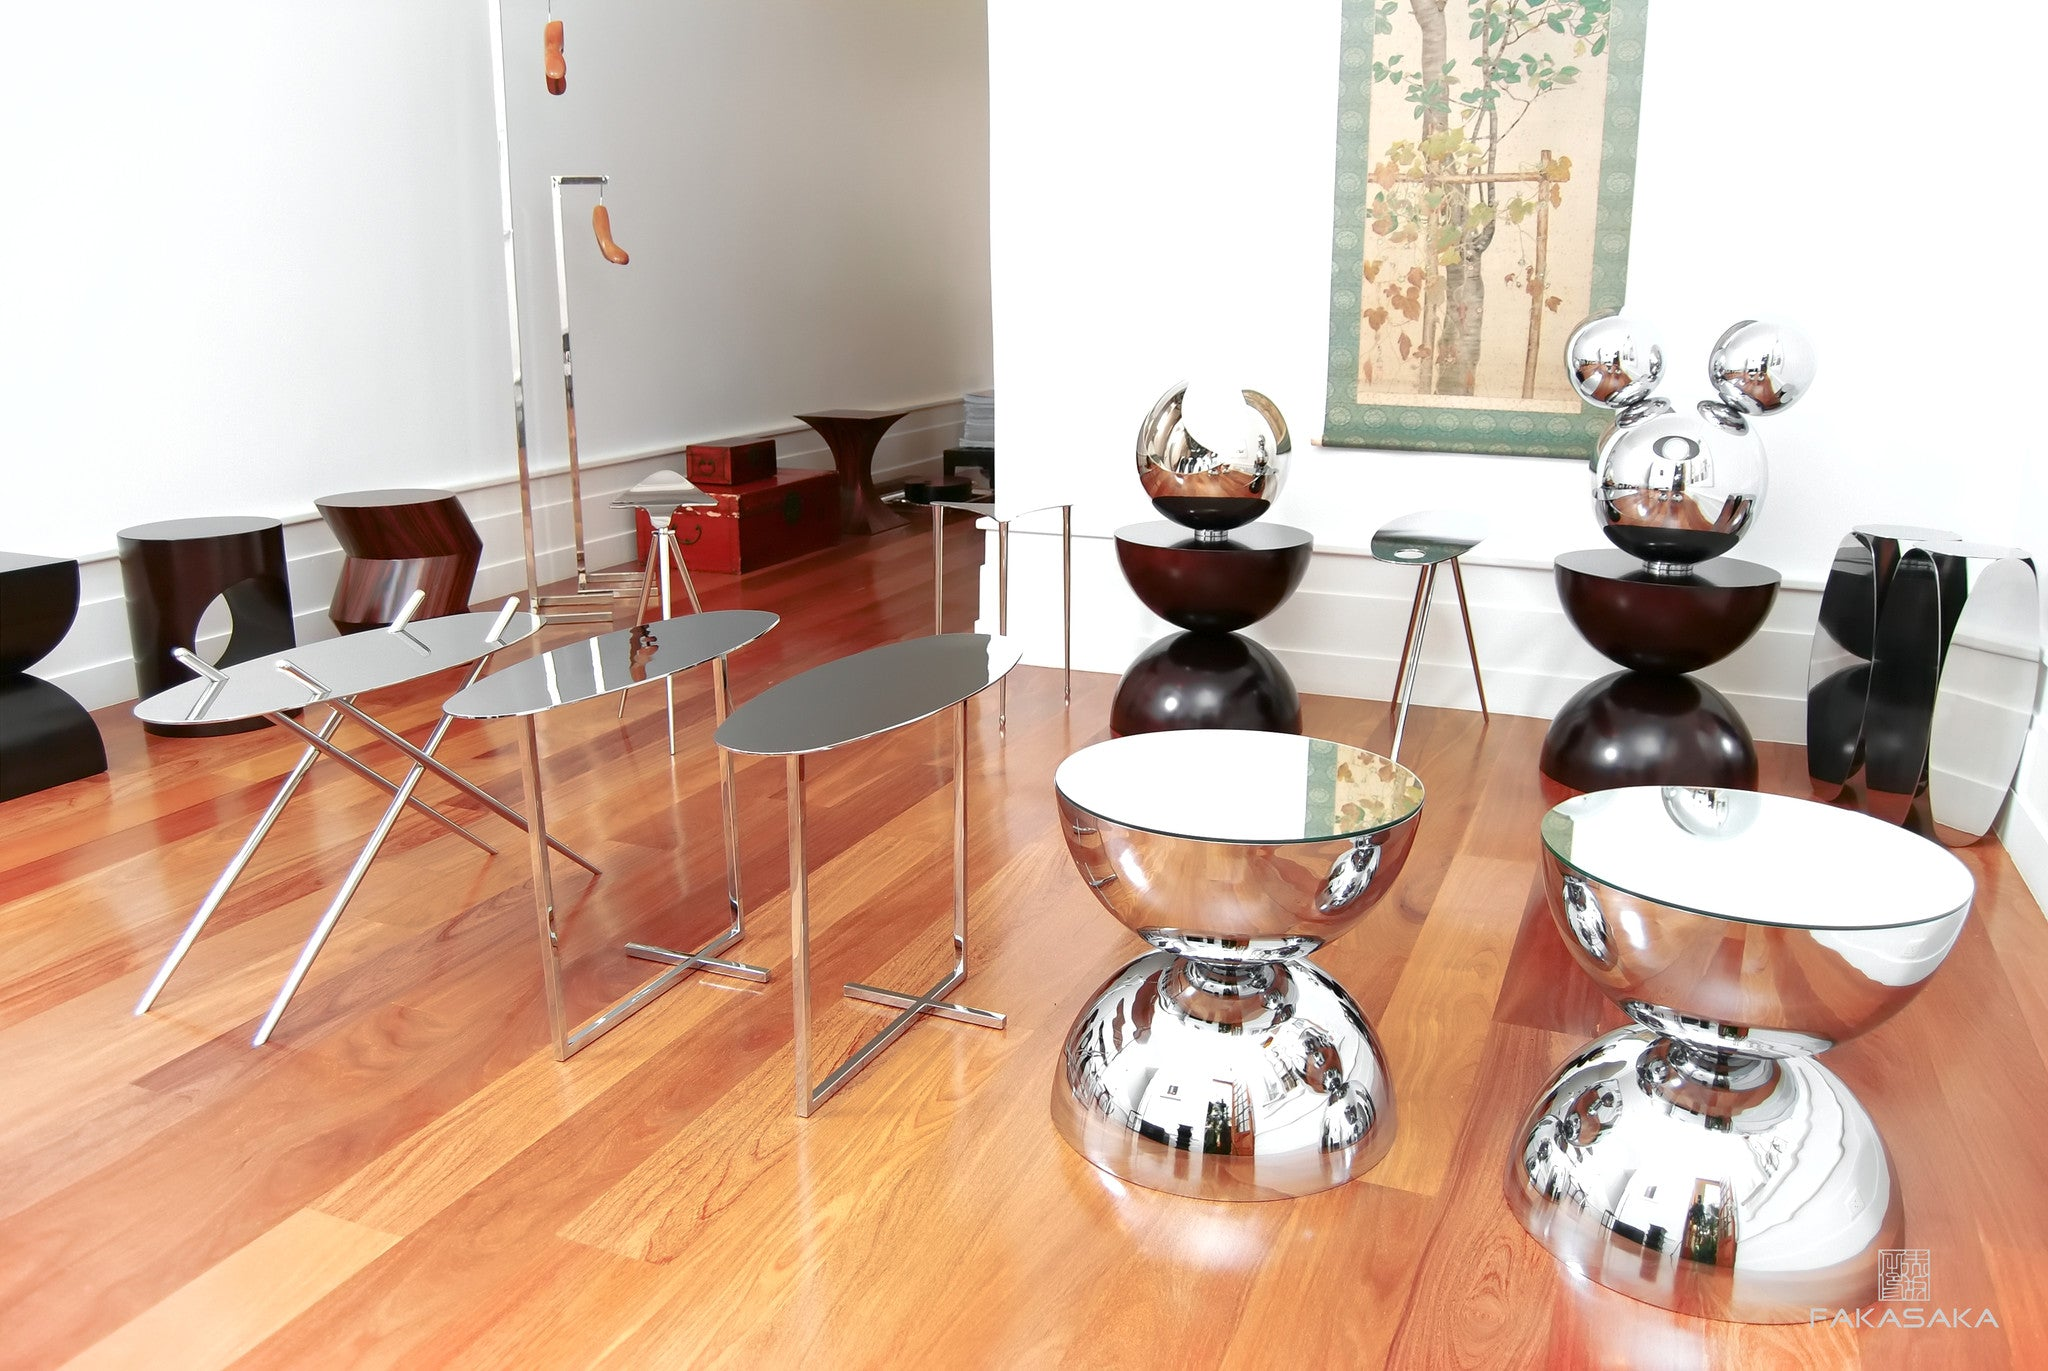 FA13 SIDE TABLE / DRINK TABLE<br><br>CHROMED